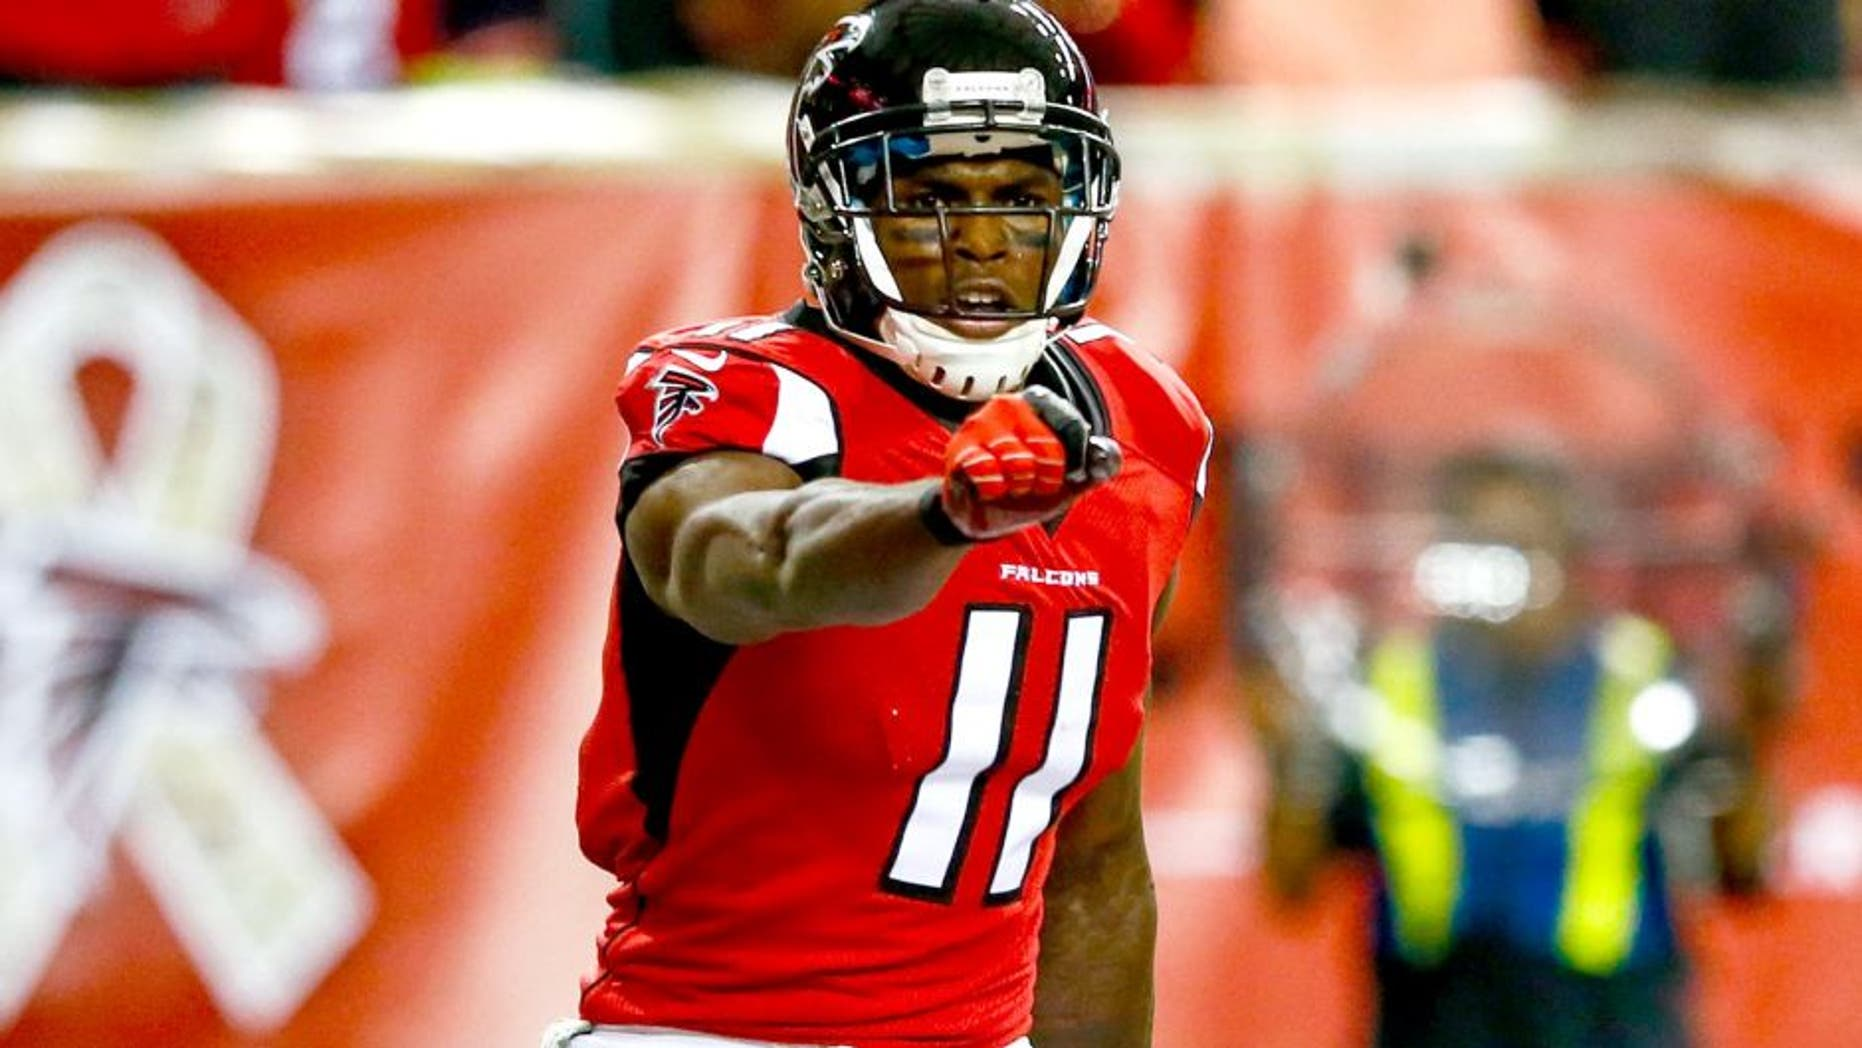 ATLANTA, GA - NOVEMBER 23: Julio Jones #11 of the Atlanta Falcons celebraes a touchdown in the first half against the Cleveland Browns at Georgia Dome on November 23, 2014 in Atlanta, Georgia. (Photo by Kevin C. Cox/Getty Images)